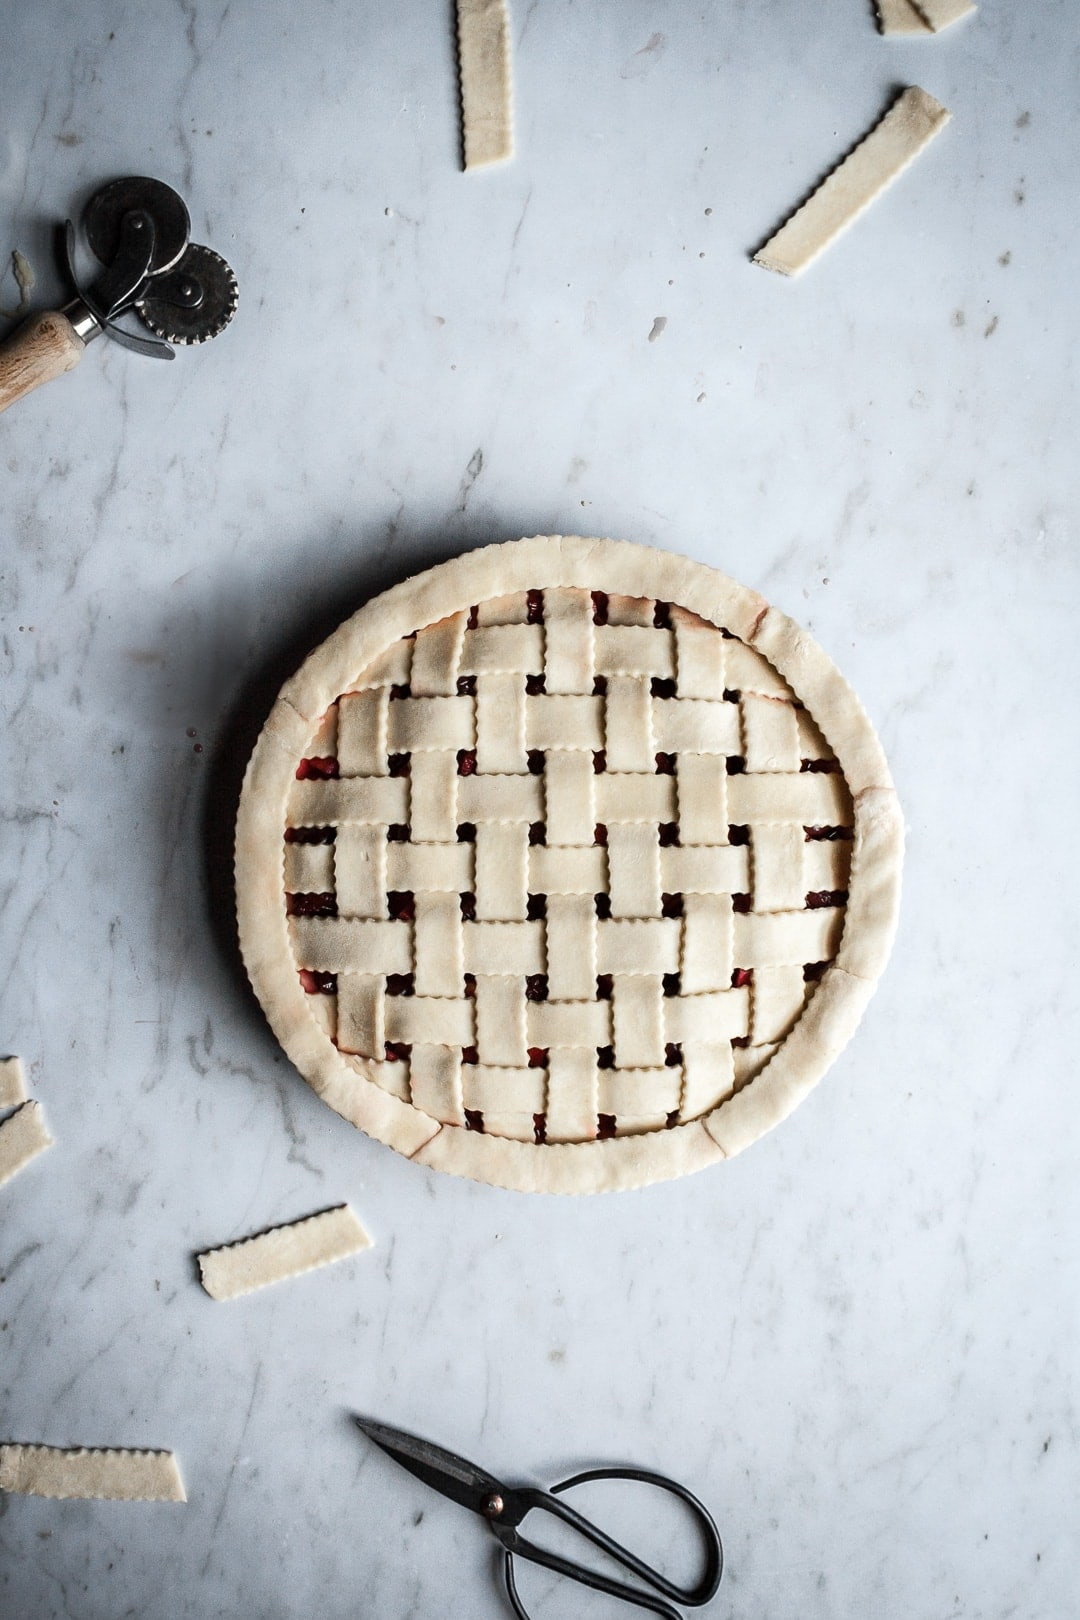 Top view of pie with lattice crust under construction on a marble background